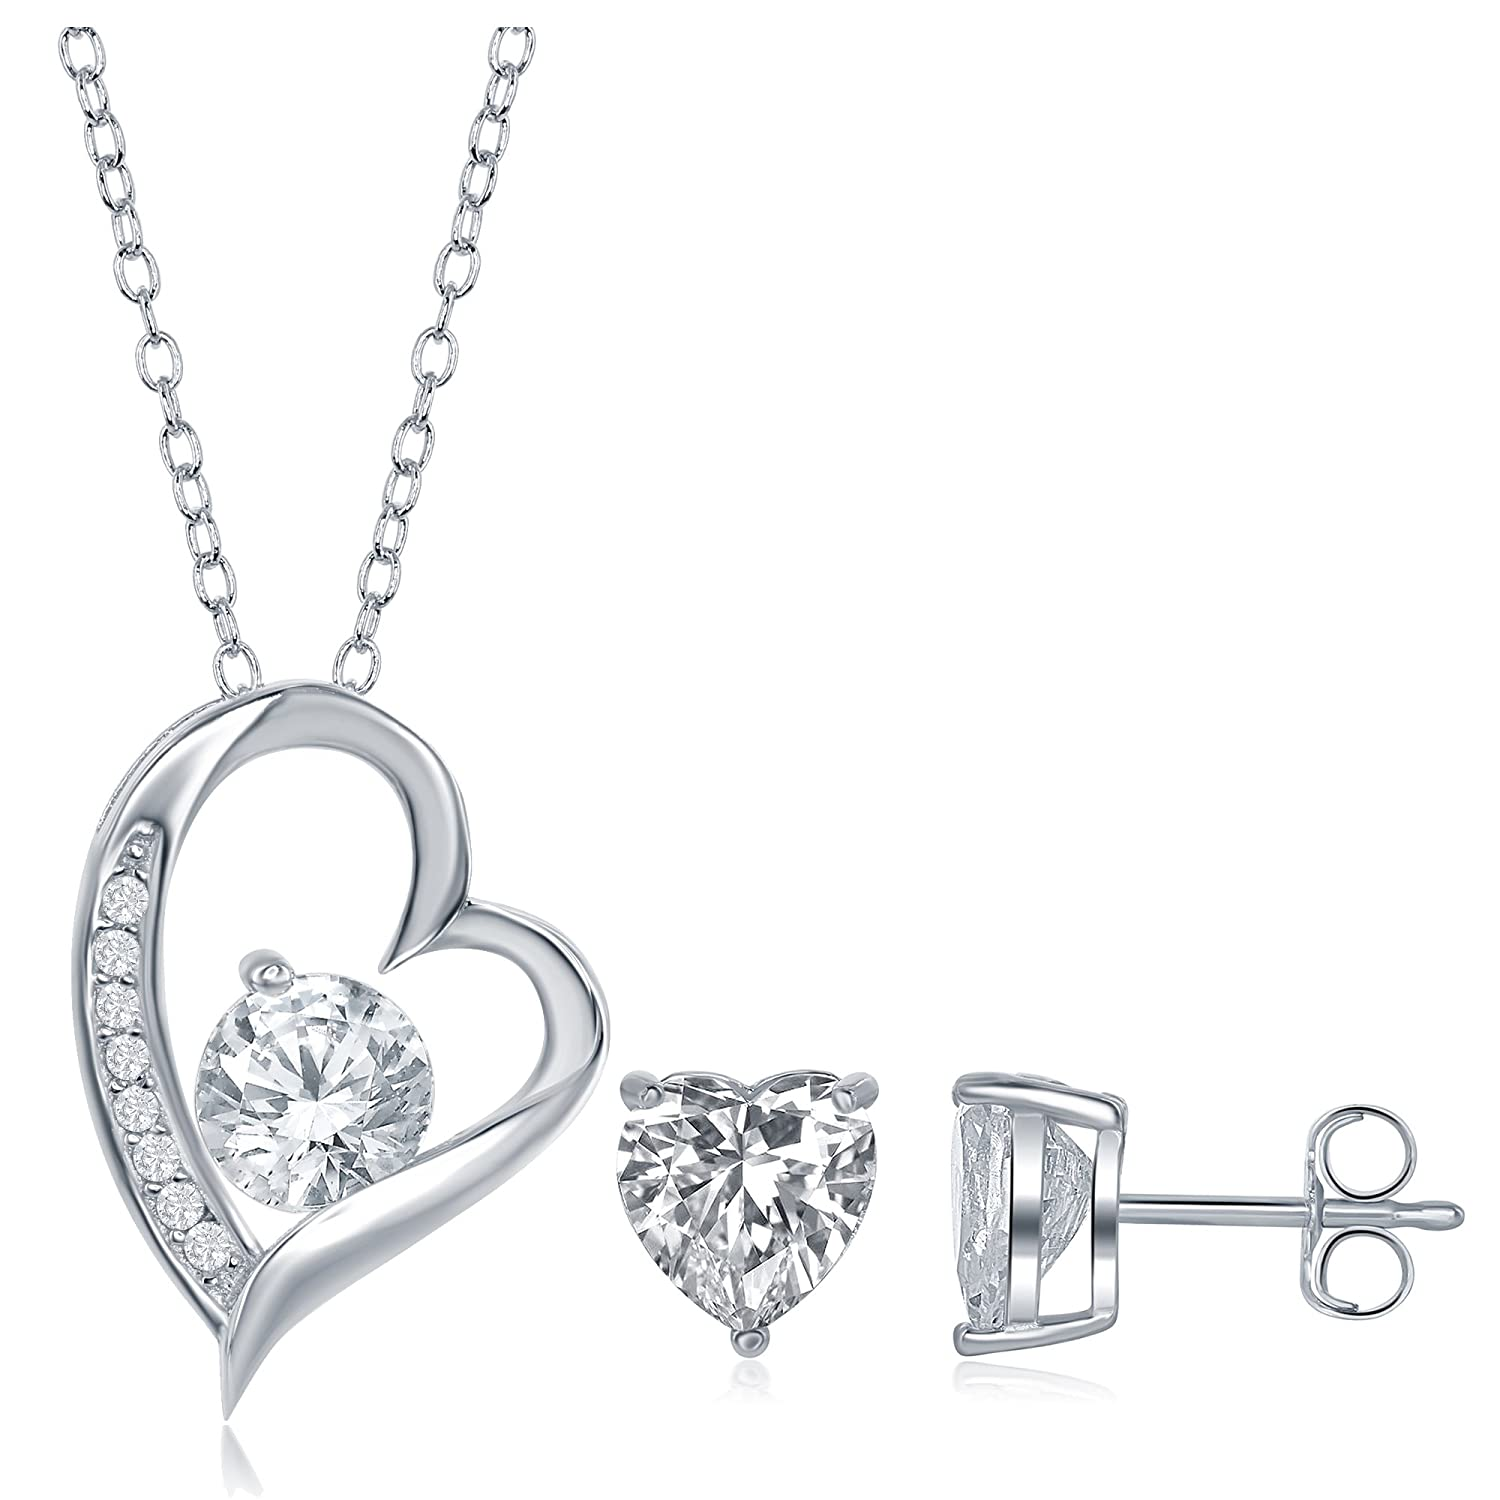 c3ee796039 Amazon.com: AceLay Overlay 925 Sterling Silver Forever Lover Heart Pendant  Necklace CZ Stones and a Free Heart Cz Stud Heart Necklace: Jewelry